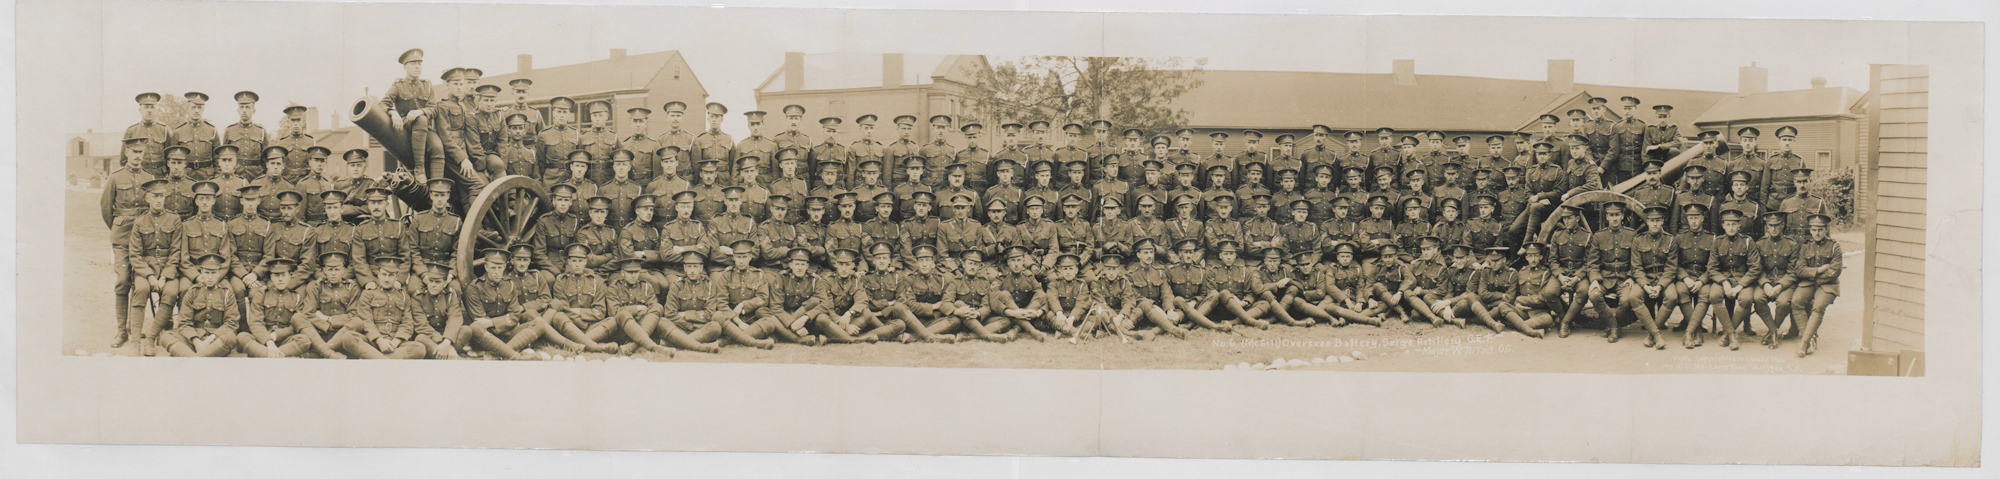 Photograph showing men from the No. 6 McGill Battery. This Battery was formed of undergraduates and graduates from McGill University in Montreal.